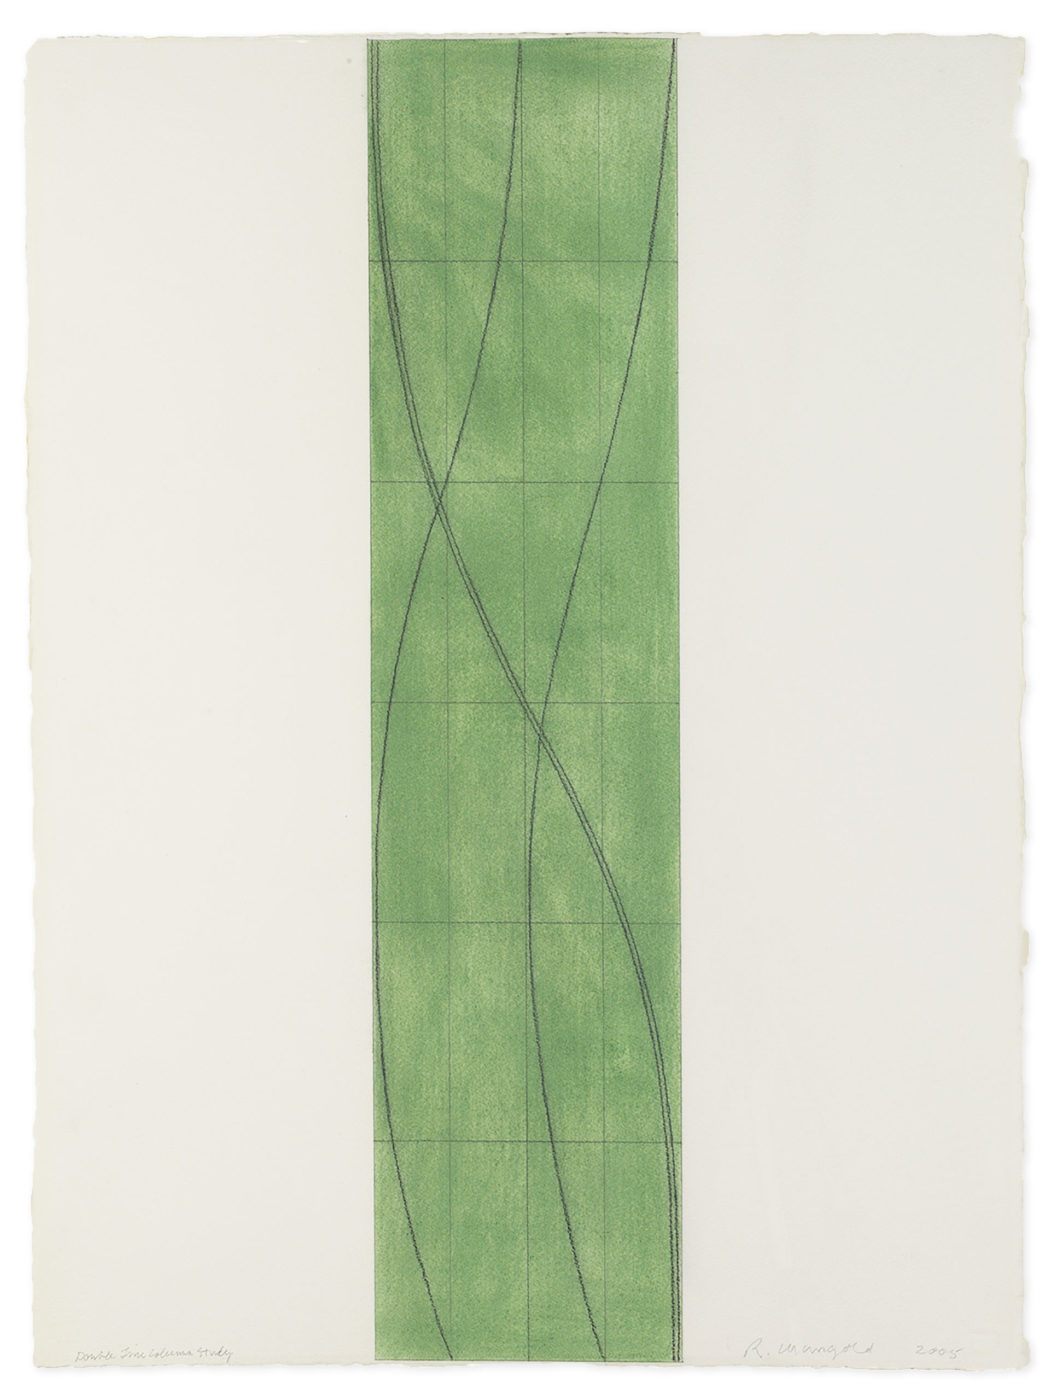 Robert Mangold painting titled Double line column study, from year 2005